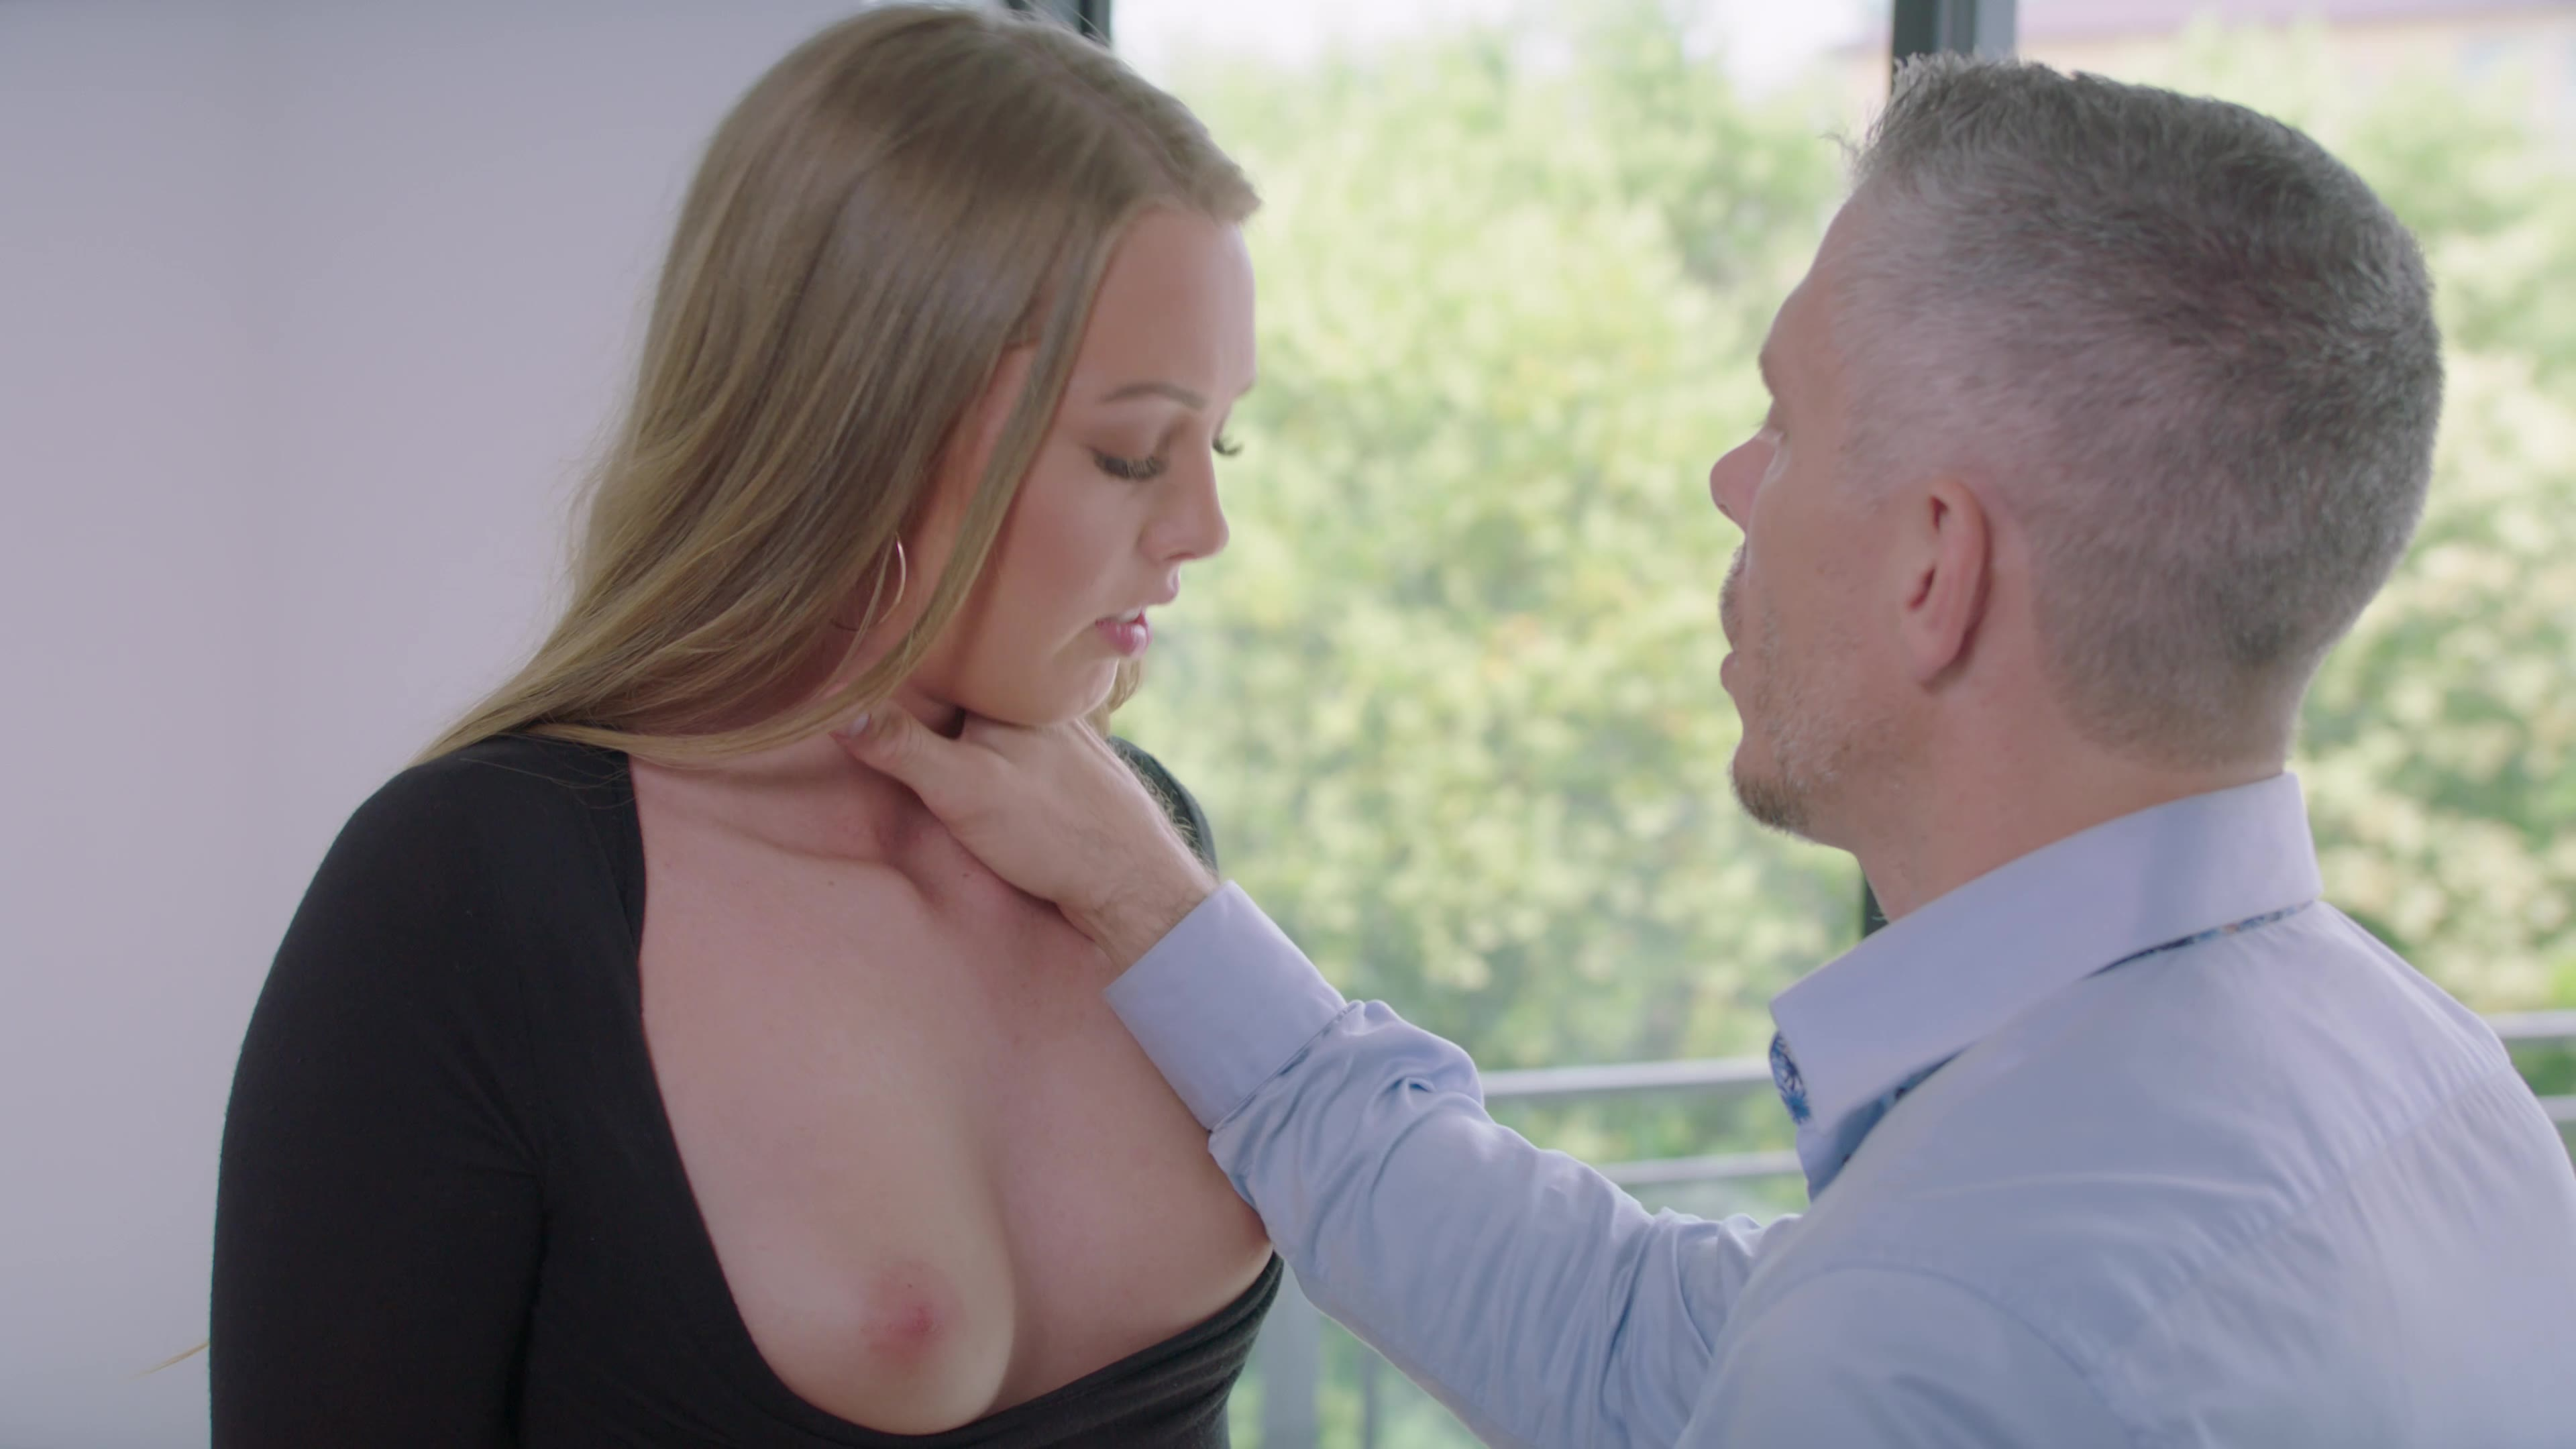 First Anal 10 (2019) Film Erotic Online in HD 1080p